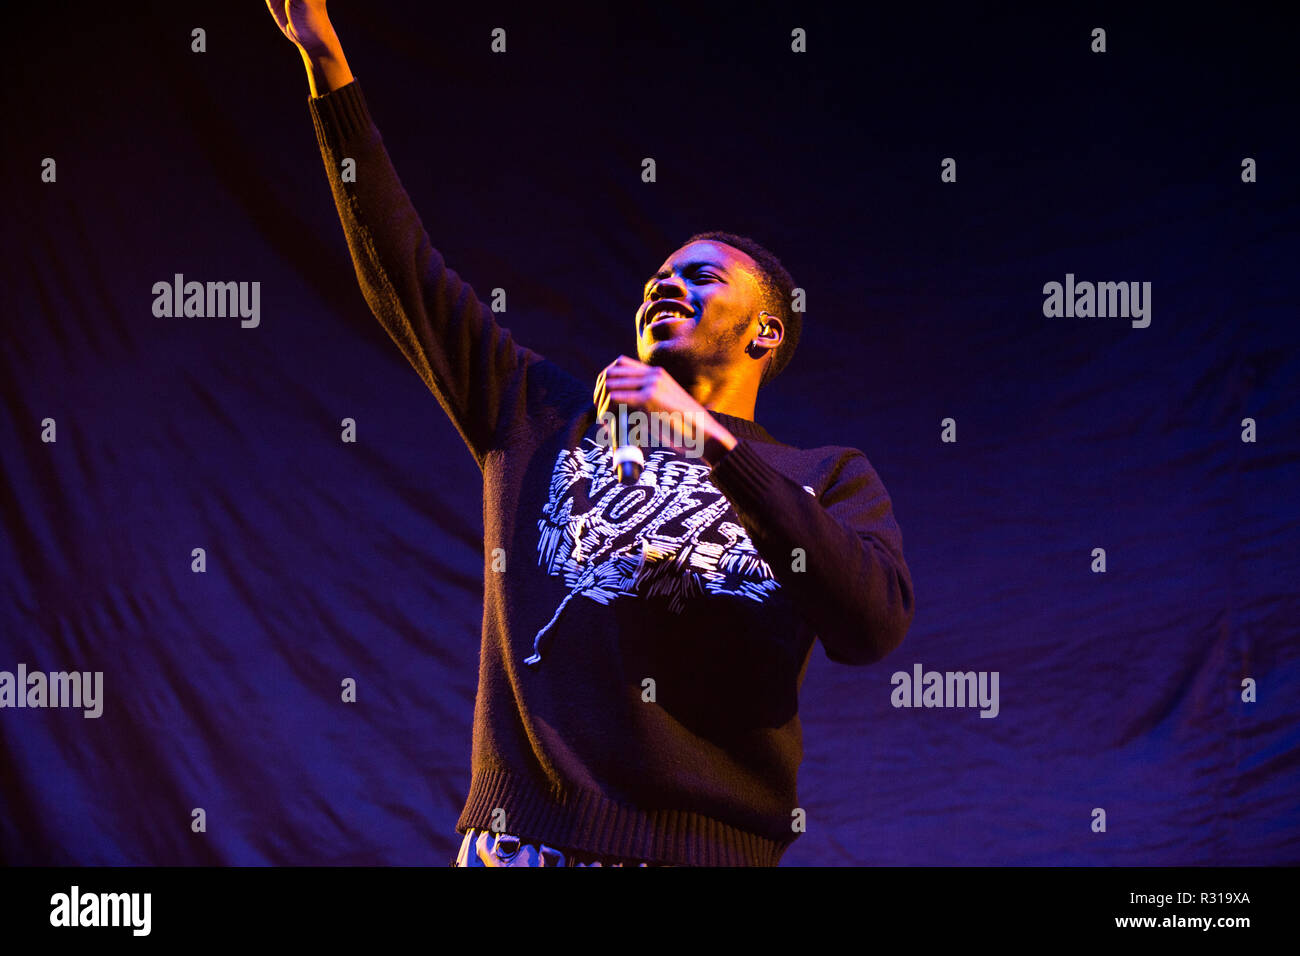 London, UK. 20th October, 2018. Not3s performing at the The 02 London on the 20th November 2018 Credit: Tom Rose/Alamy Live News Stock Photo